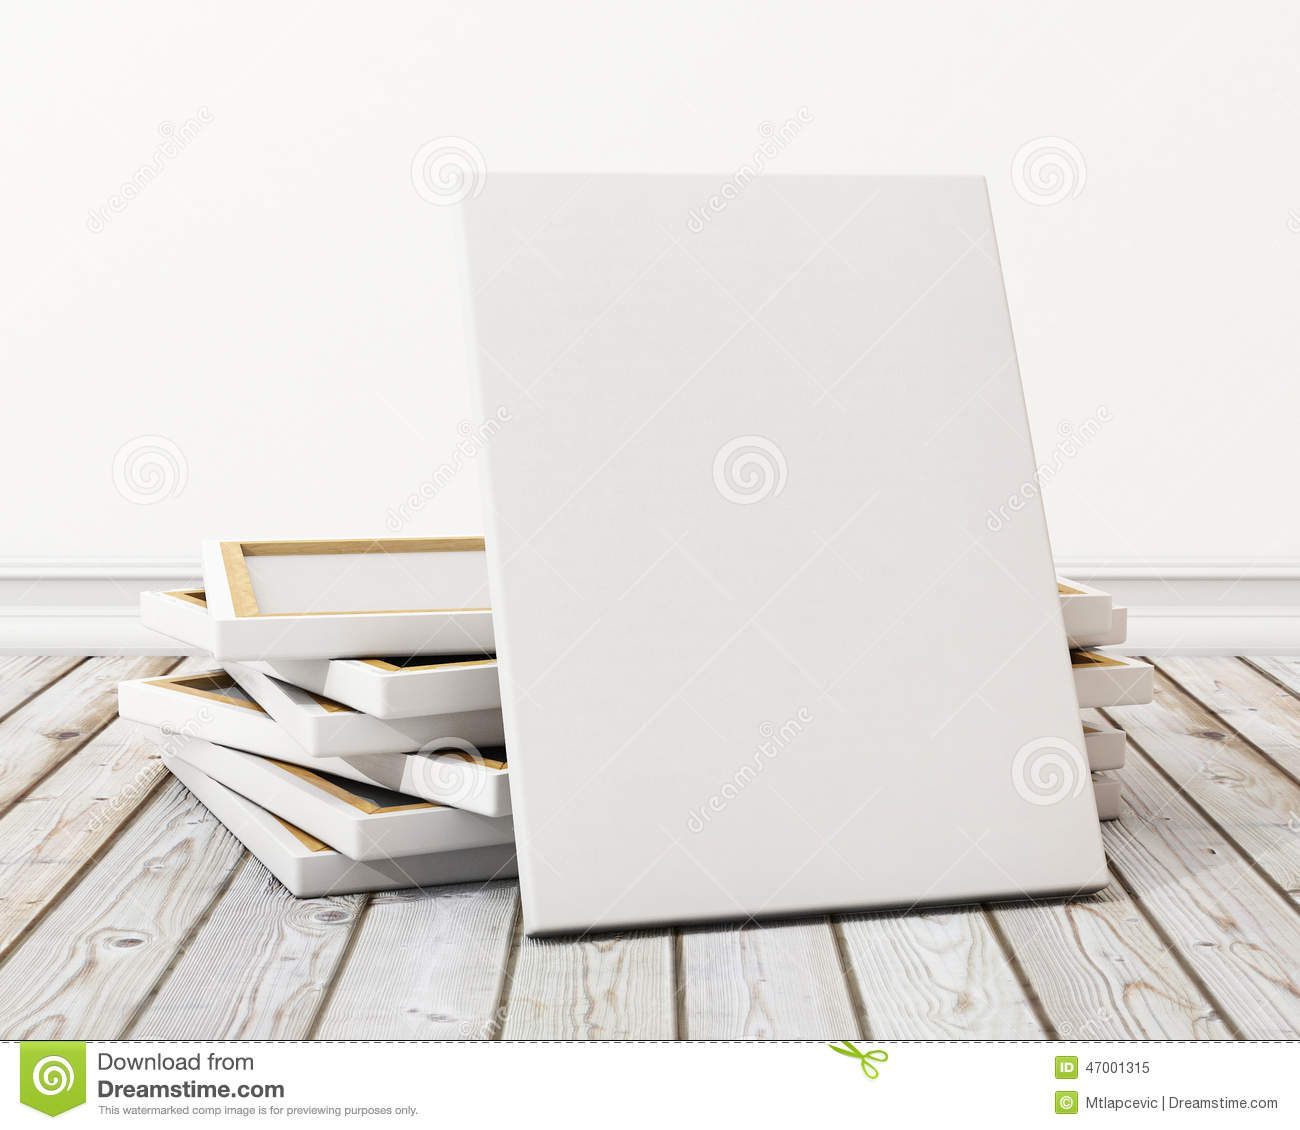 Stock Illustration: Mock up blank canvas or poster with pile of canvas ...